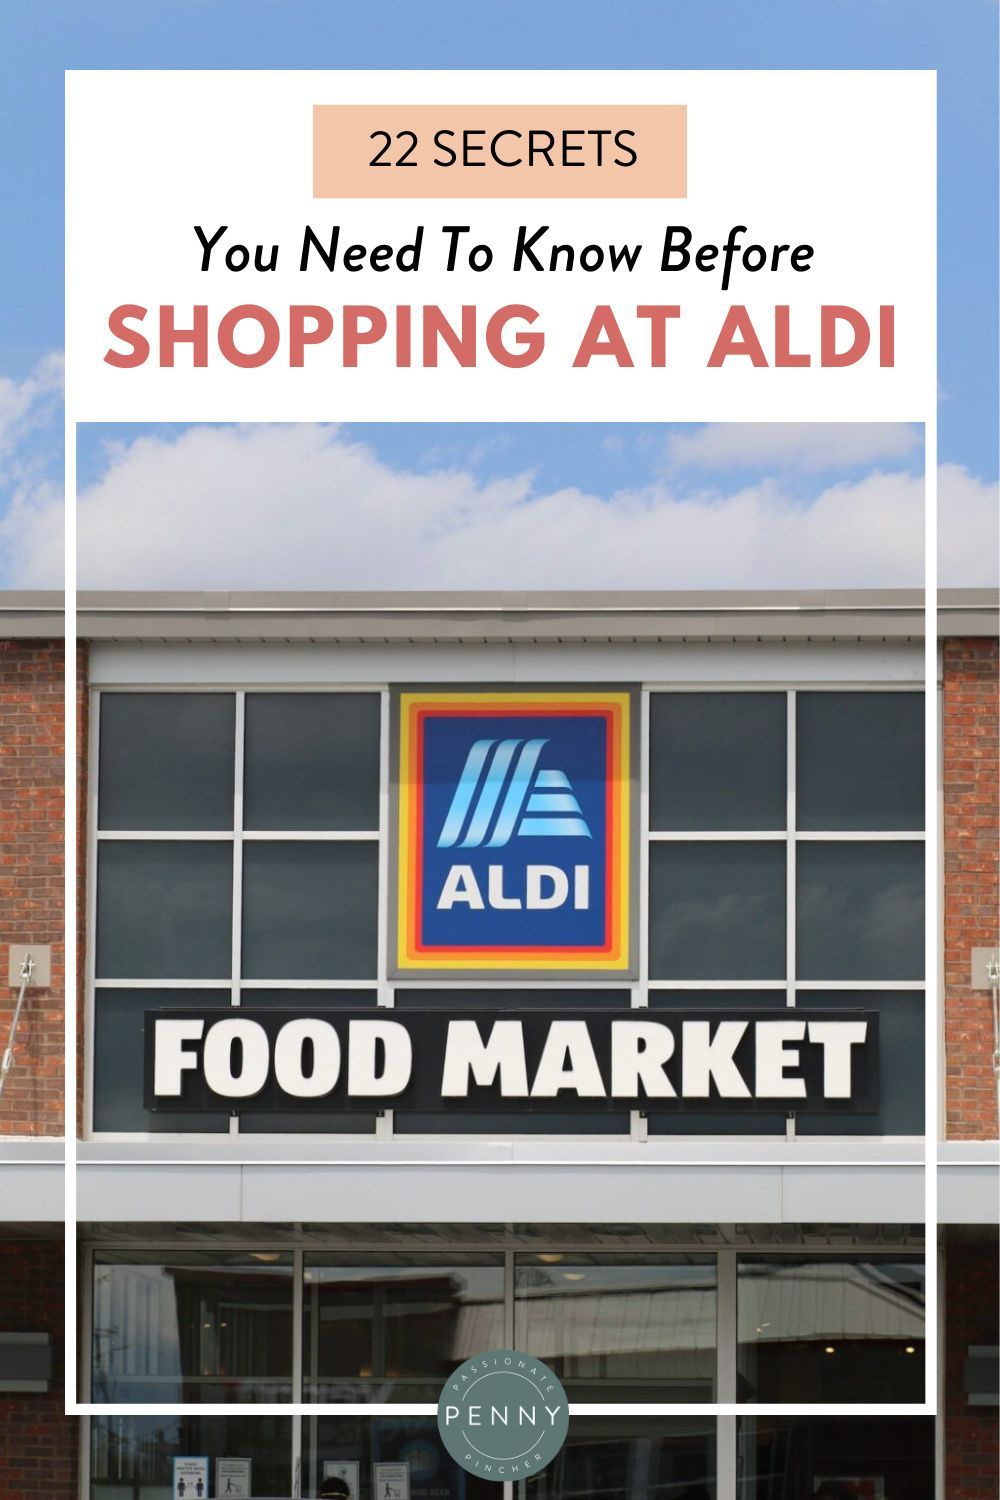 22 Secrets You Need To Know Before Shopping Aldi Seriously My Favorite Place To Shop Right Now Money Saving Plan Money Saving Tips Blog Resources